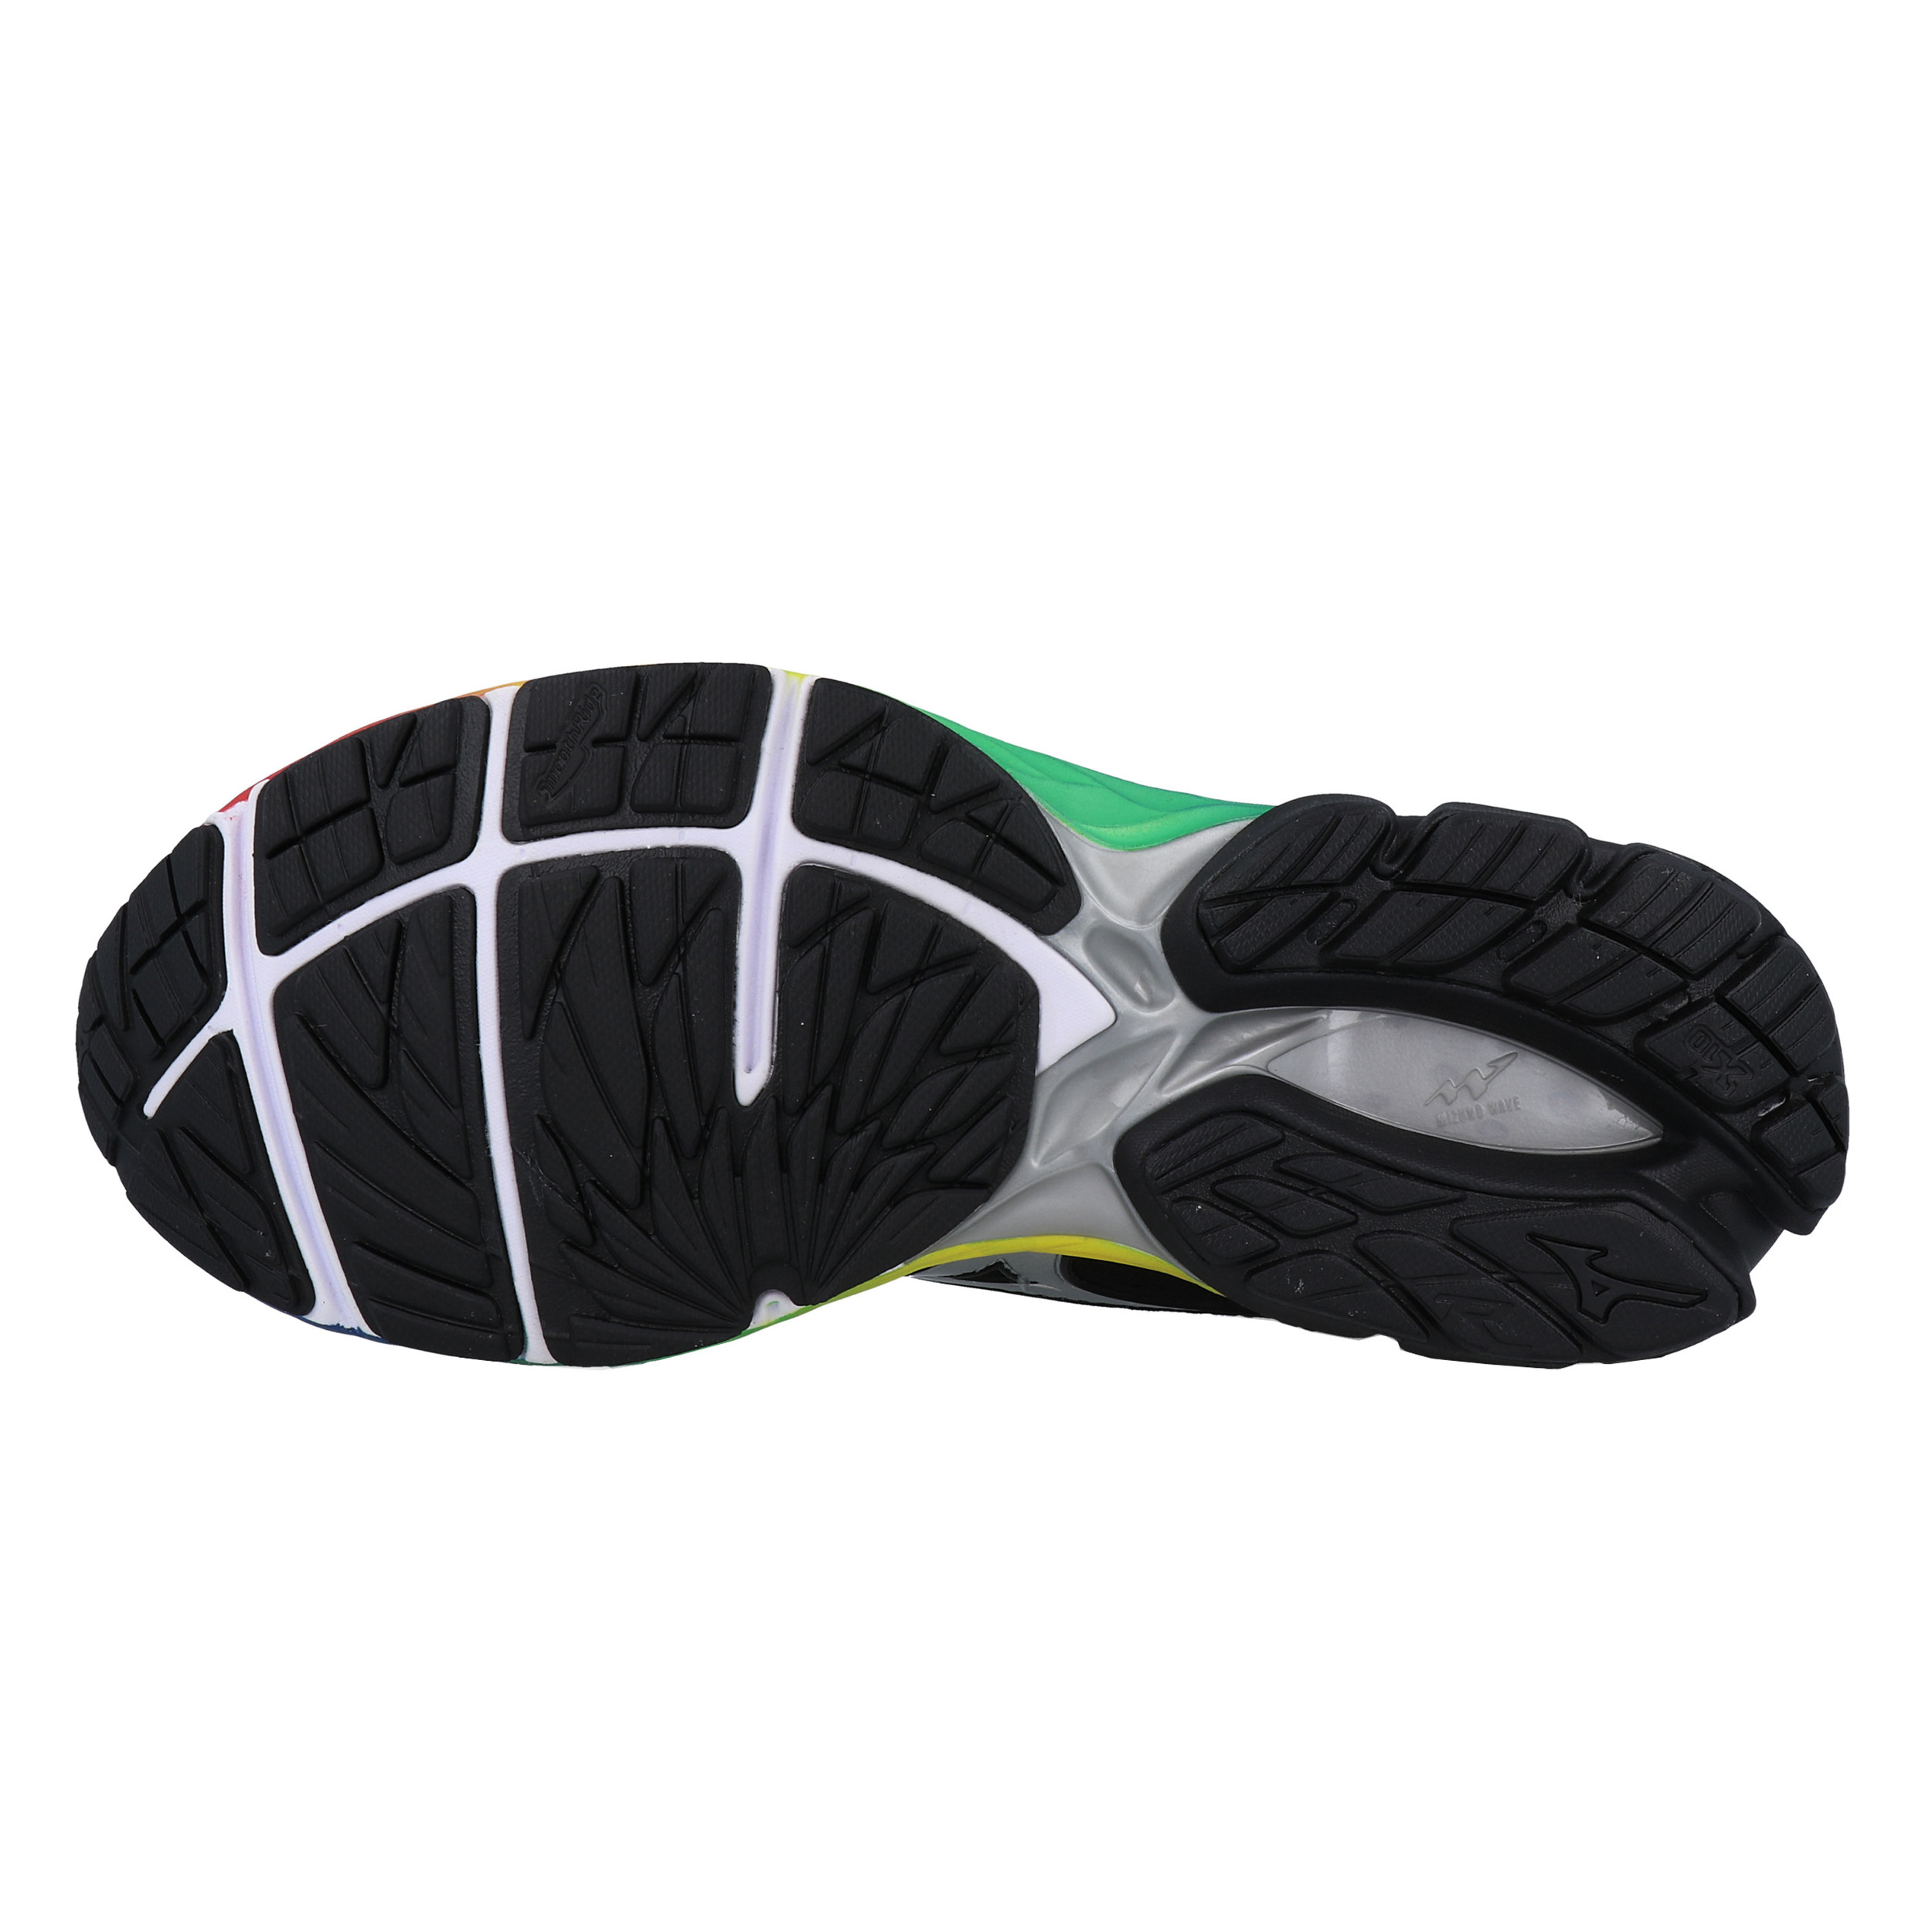 outlet store low price release info on Mizuno Homme Wave Rider 23 Chaussures De Course Baskets Baskets ...